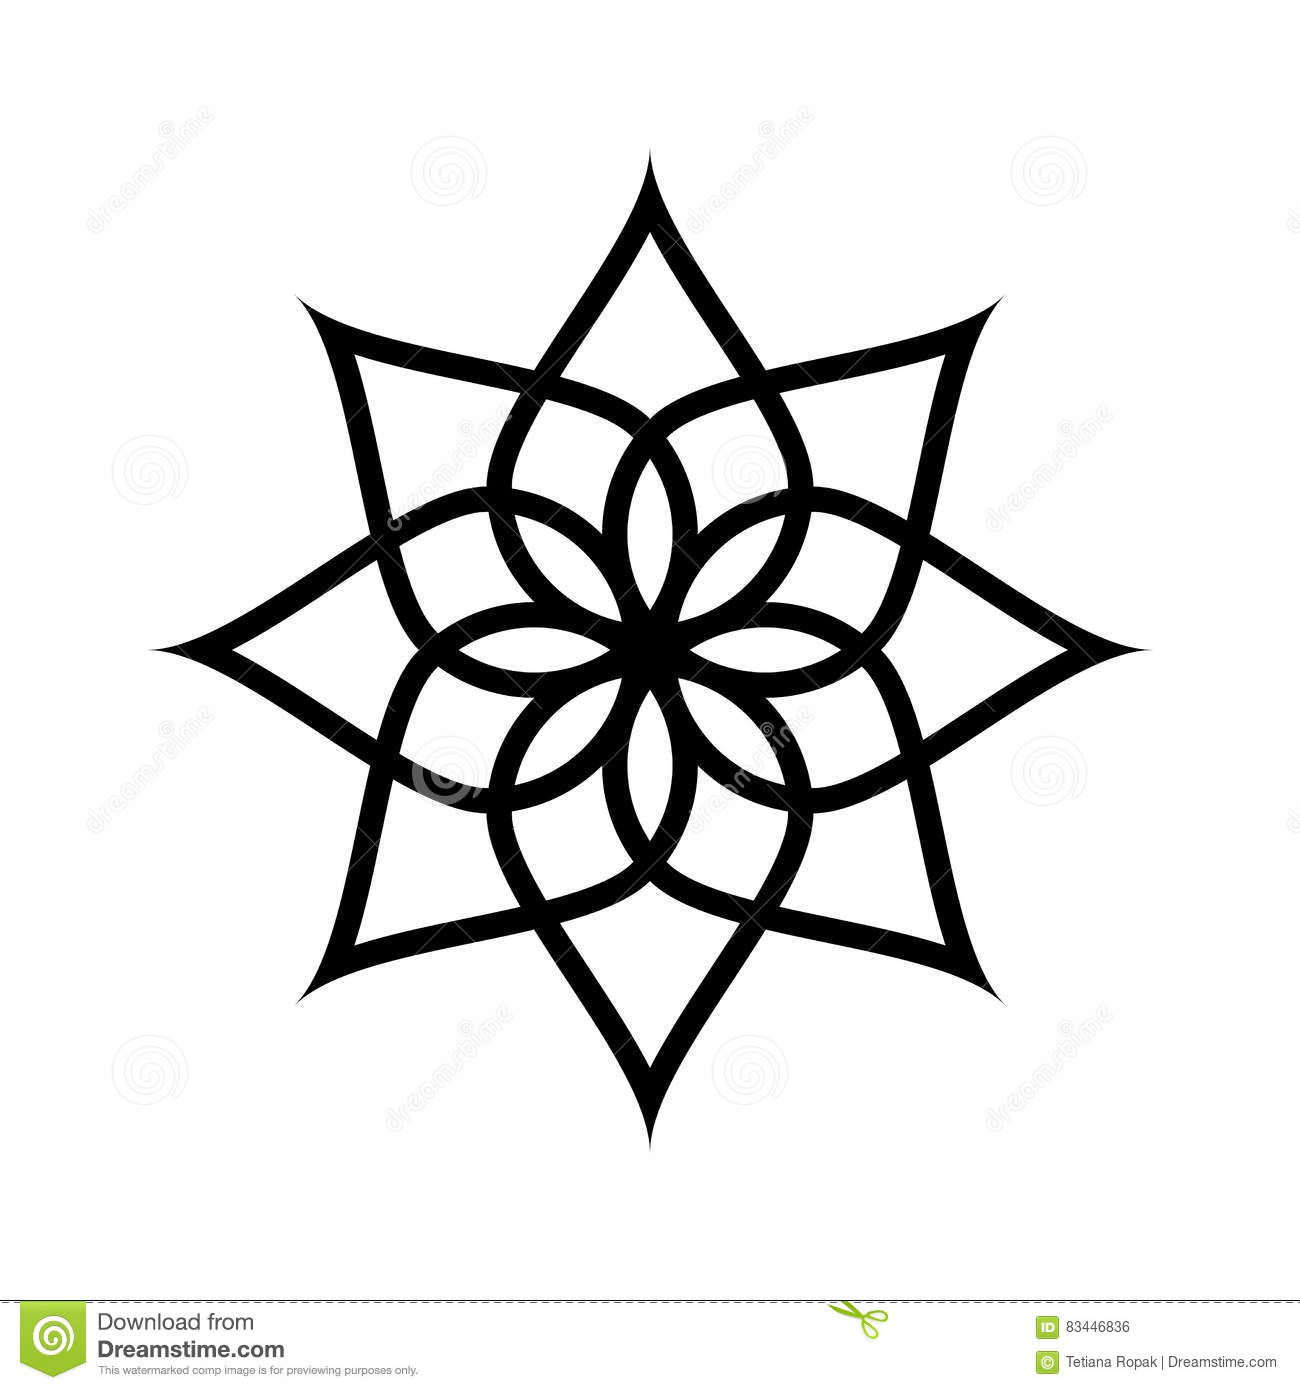 Bulls Eye Heart Mandalas To Color in addition Free Printable Geometric Coloring Pages Adults additionally 20 Best Rangoli Designs With Dots For Diwali 2015 together with 61575 roman m additionally Geometric Triangle Shapes. on simple mosaic tile patterns